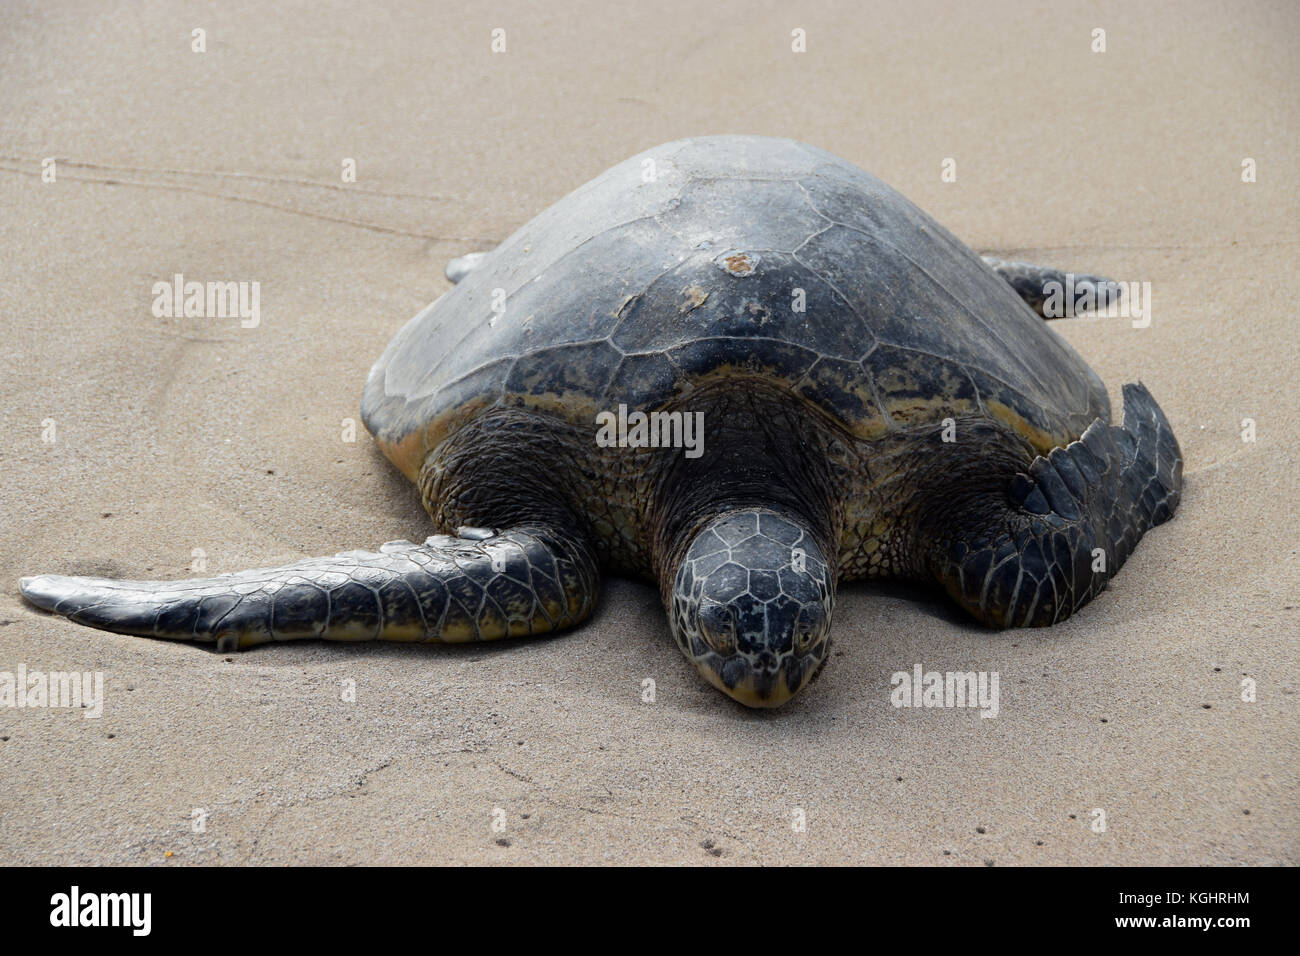 Hawaiian sea turtles on Laniakea Beach, Oahu, Hawaii - Stock Image